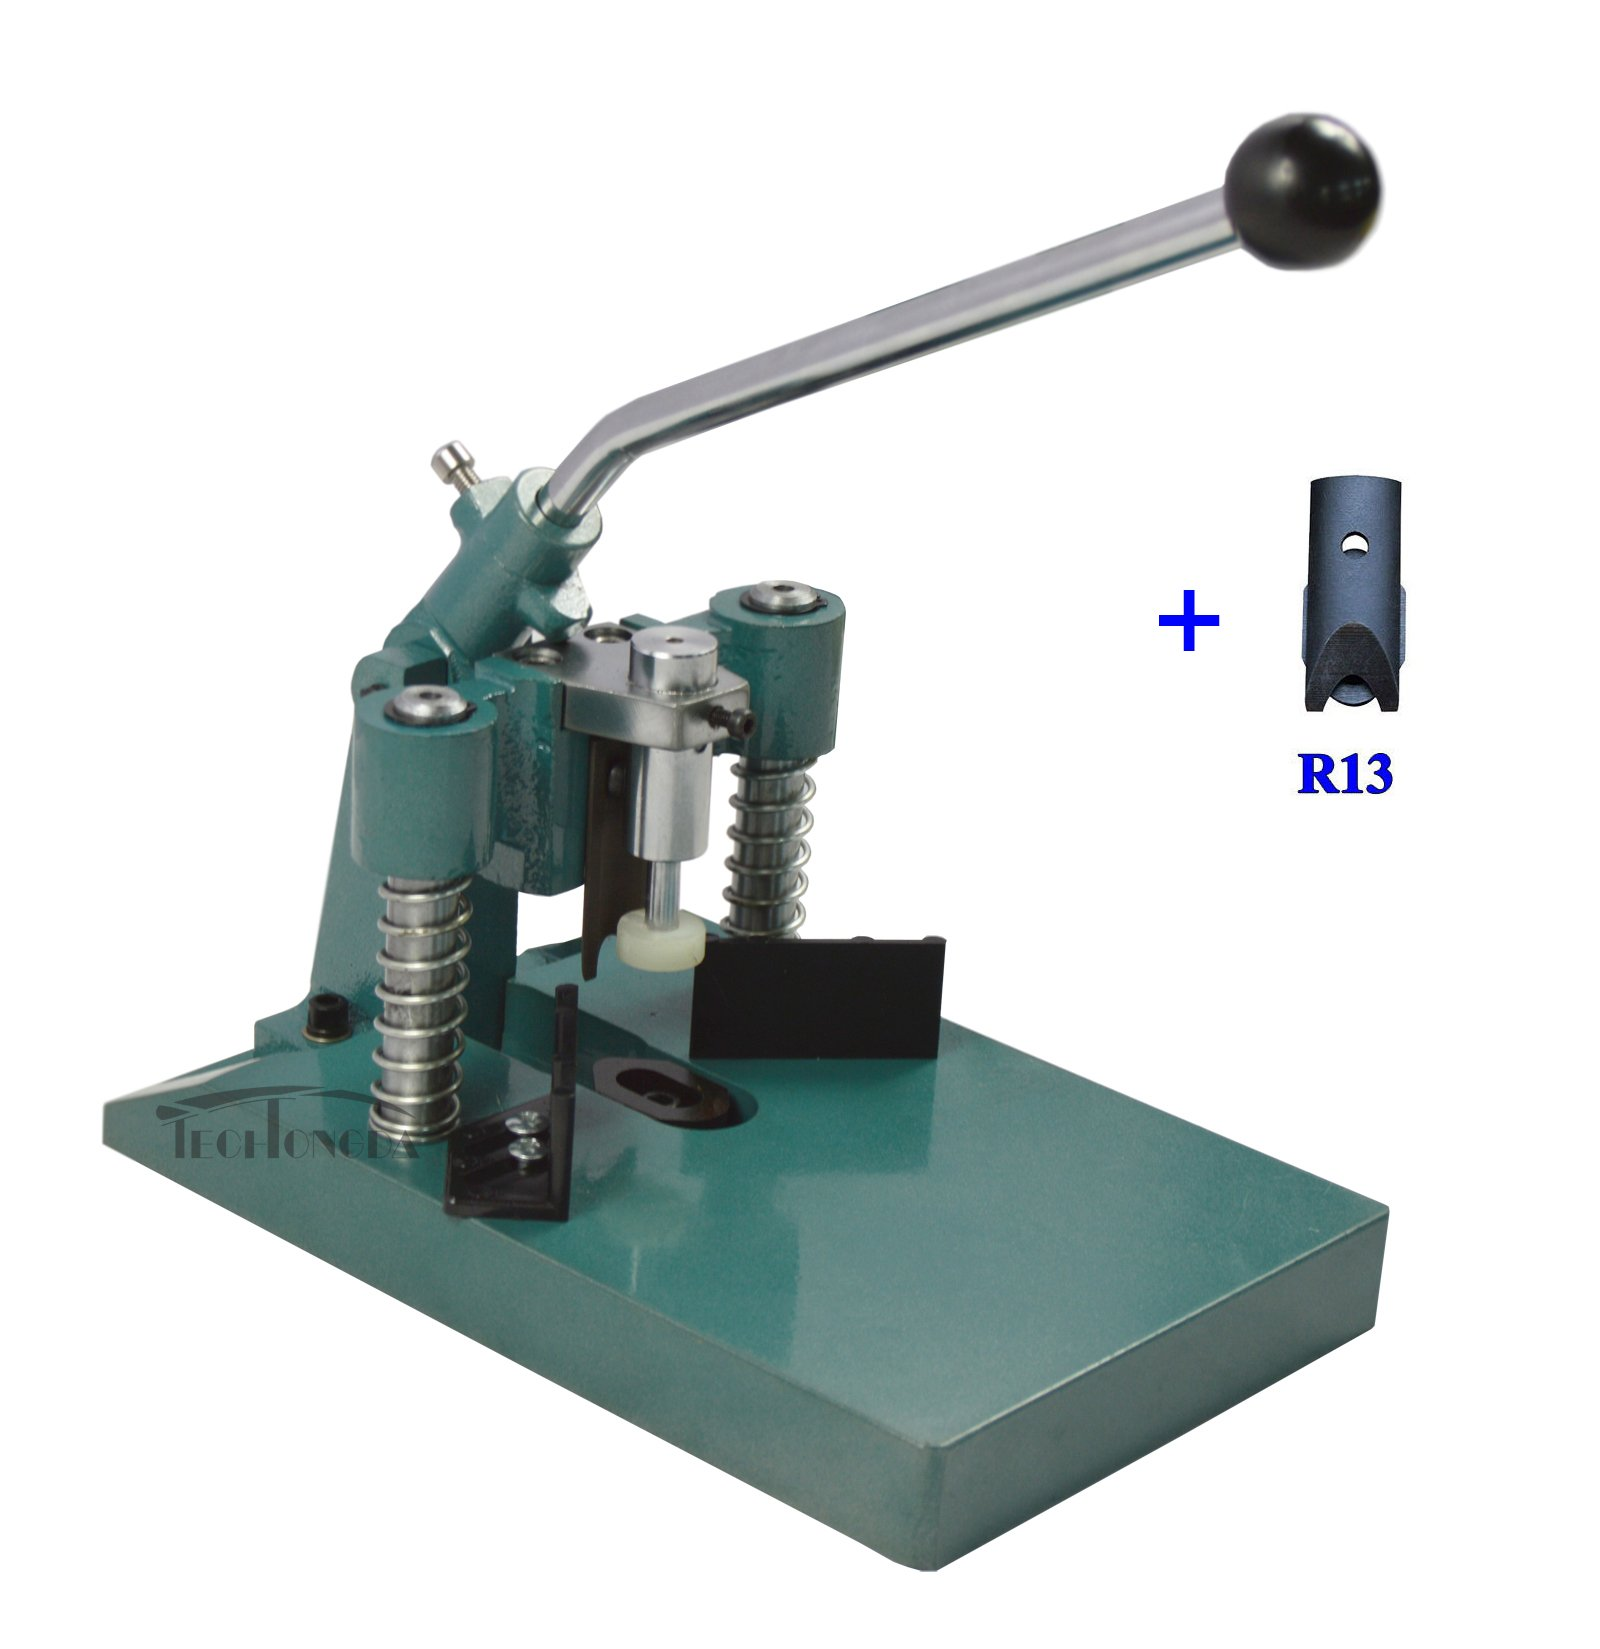 INTBUYING All Metal Standard Corner Rounder with R6 R10 R13 Blades Paper Weight